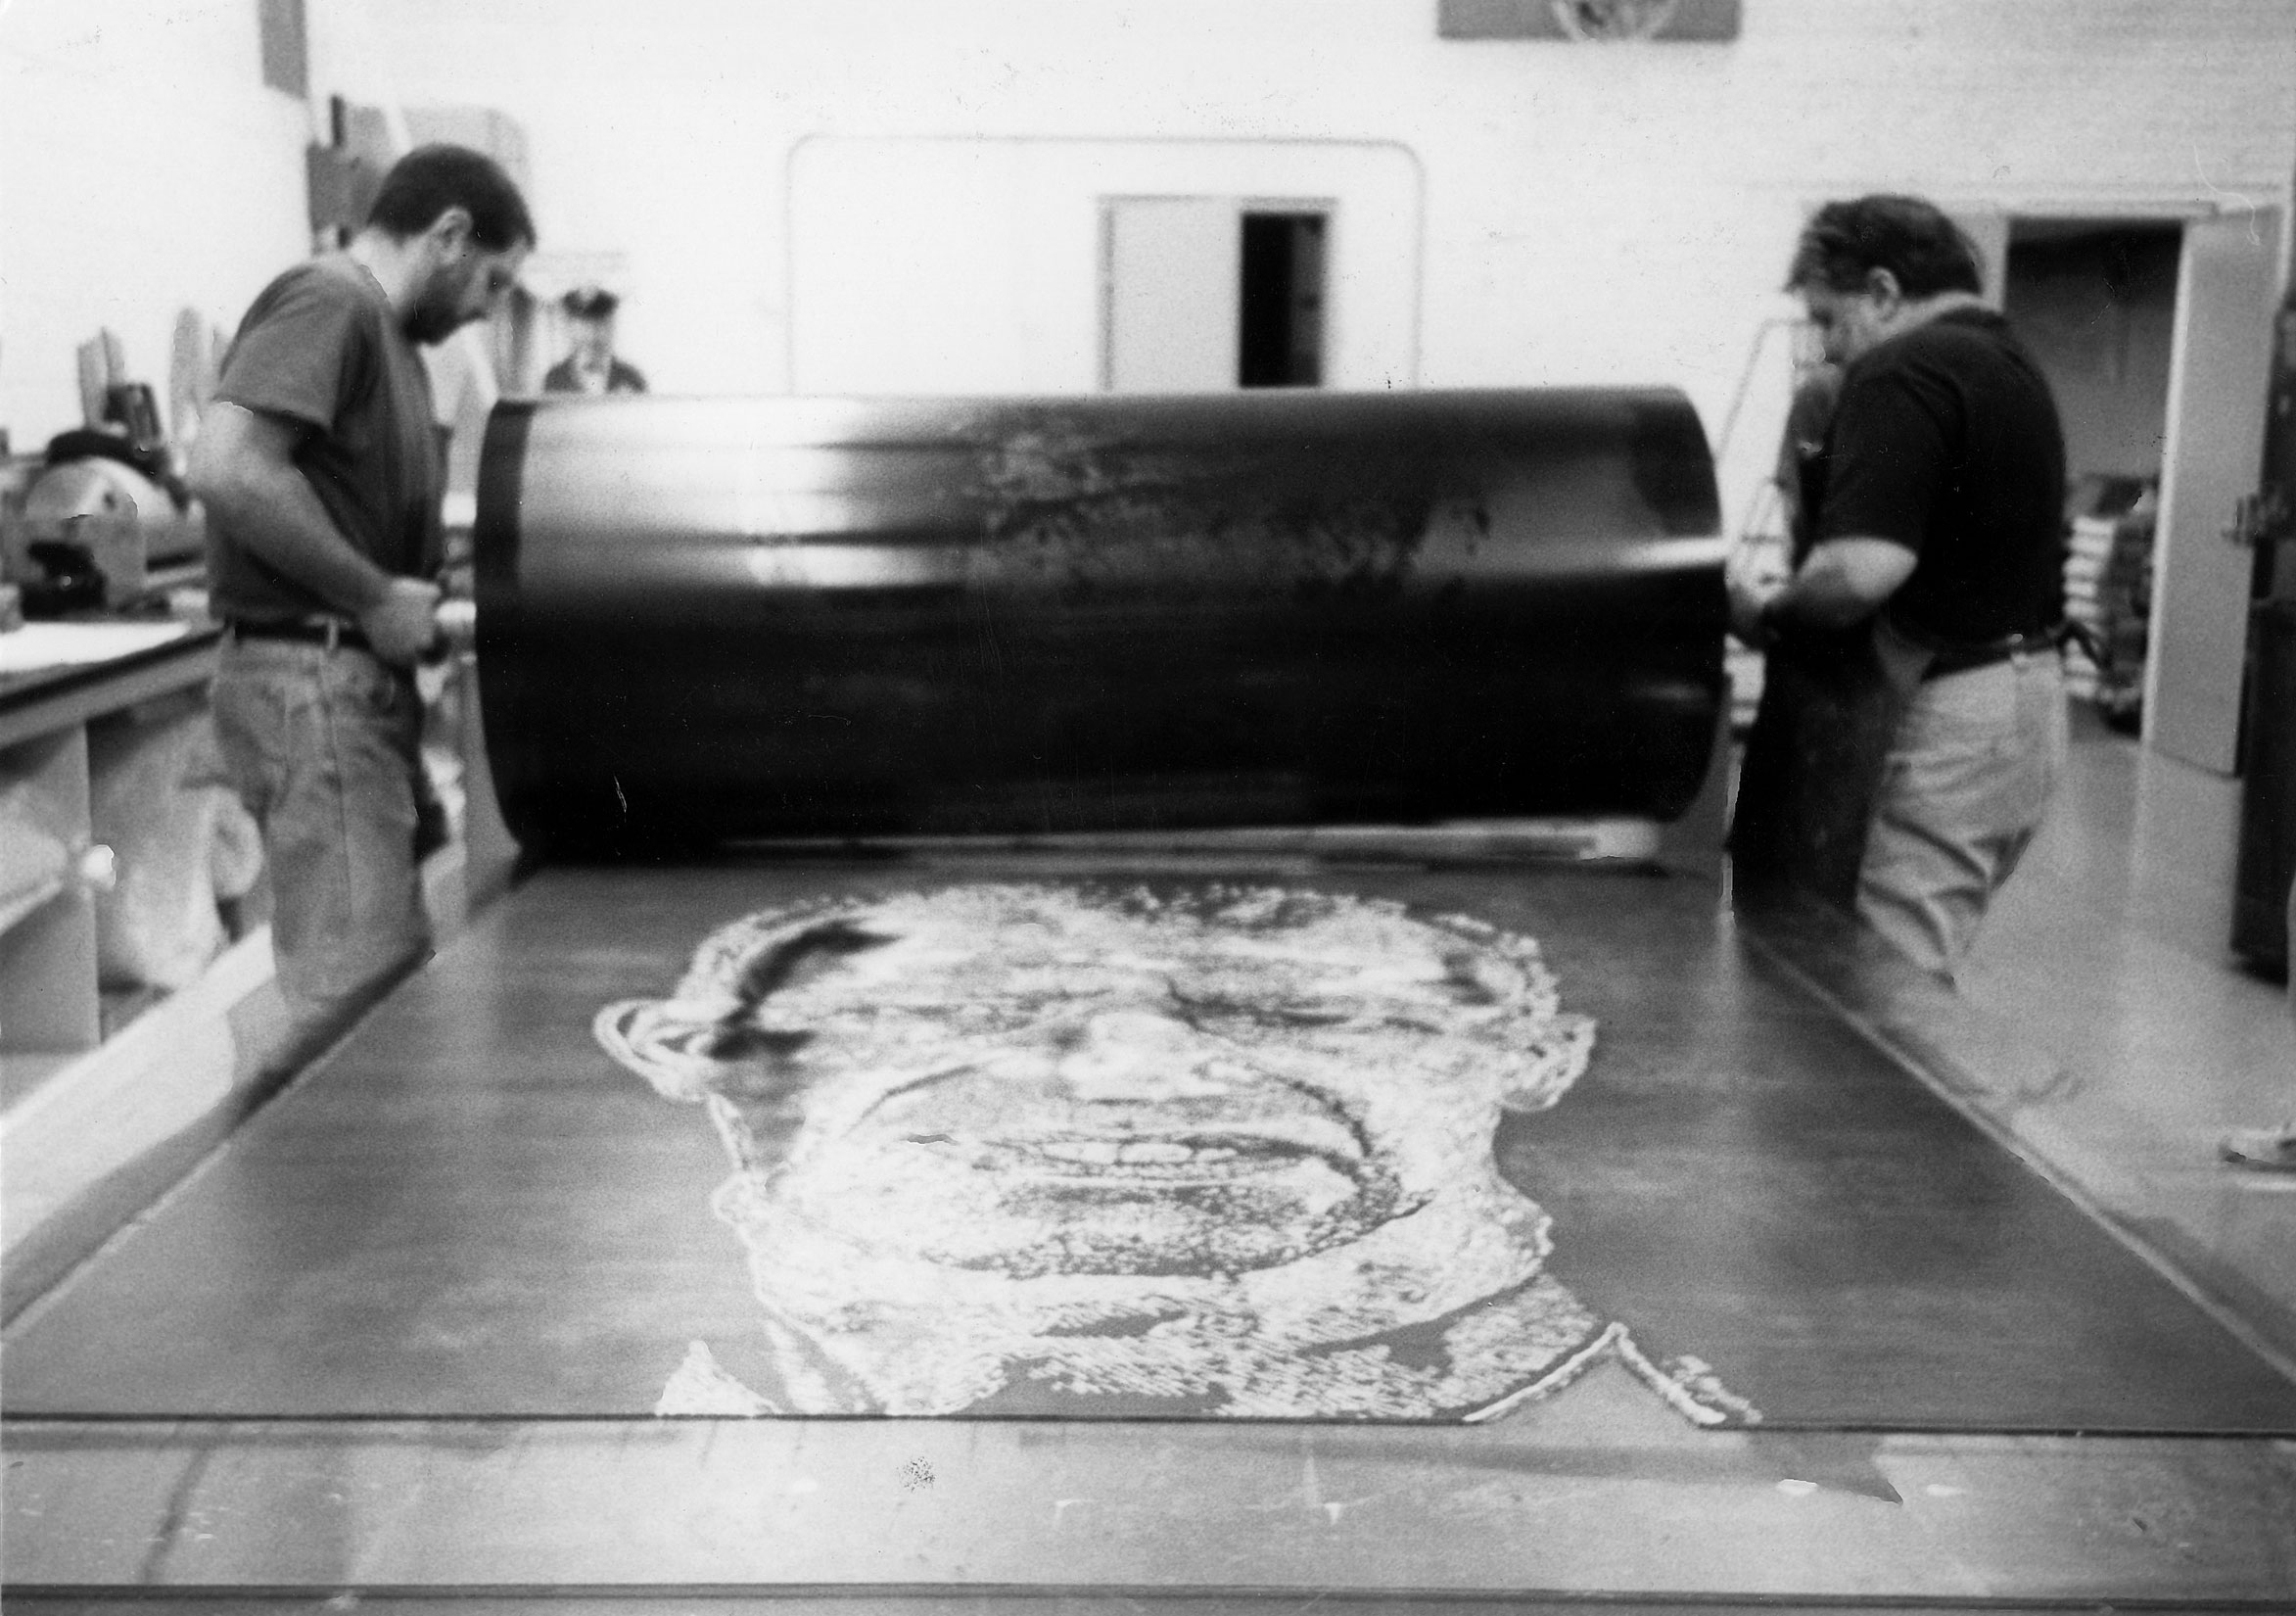 Joe Wilfer and Andy Rubin inking the linoleum block for 'Alex/Reduction Print' at Tandem Press, 1993 (Photo by Miriam Hill)